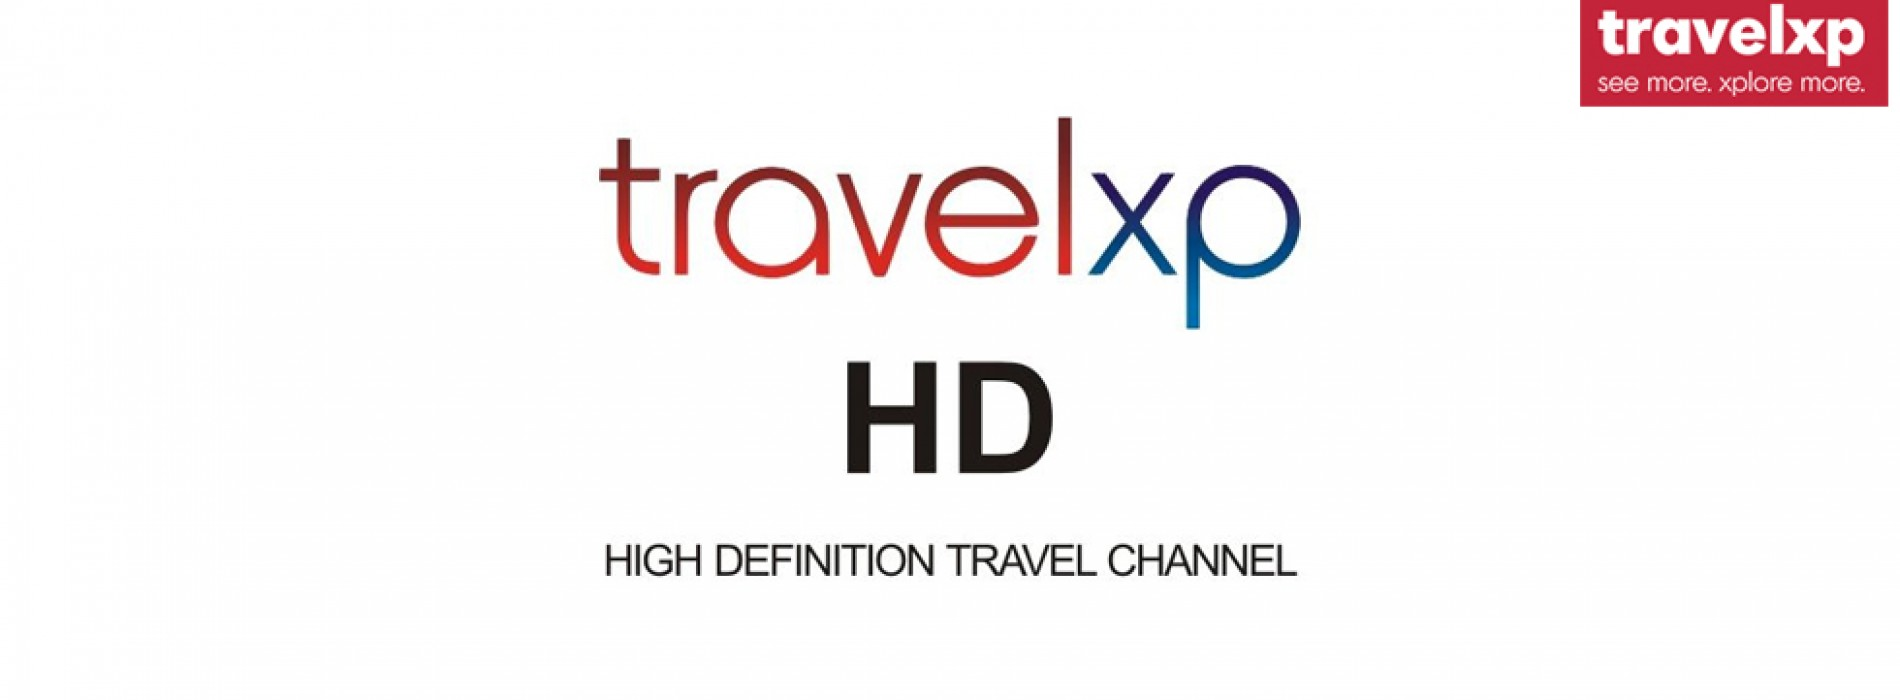 TRAVELXP HD is currently shooting in Canary Islands